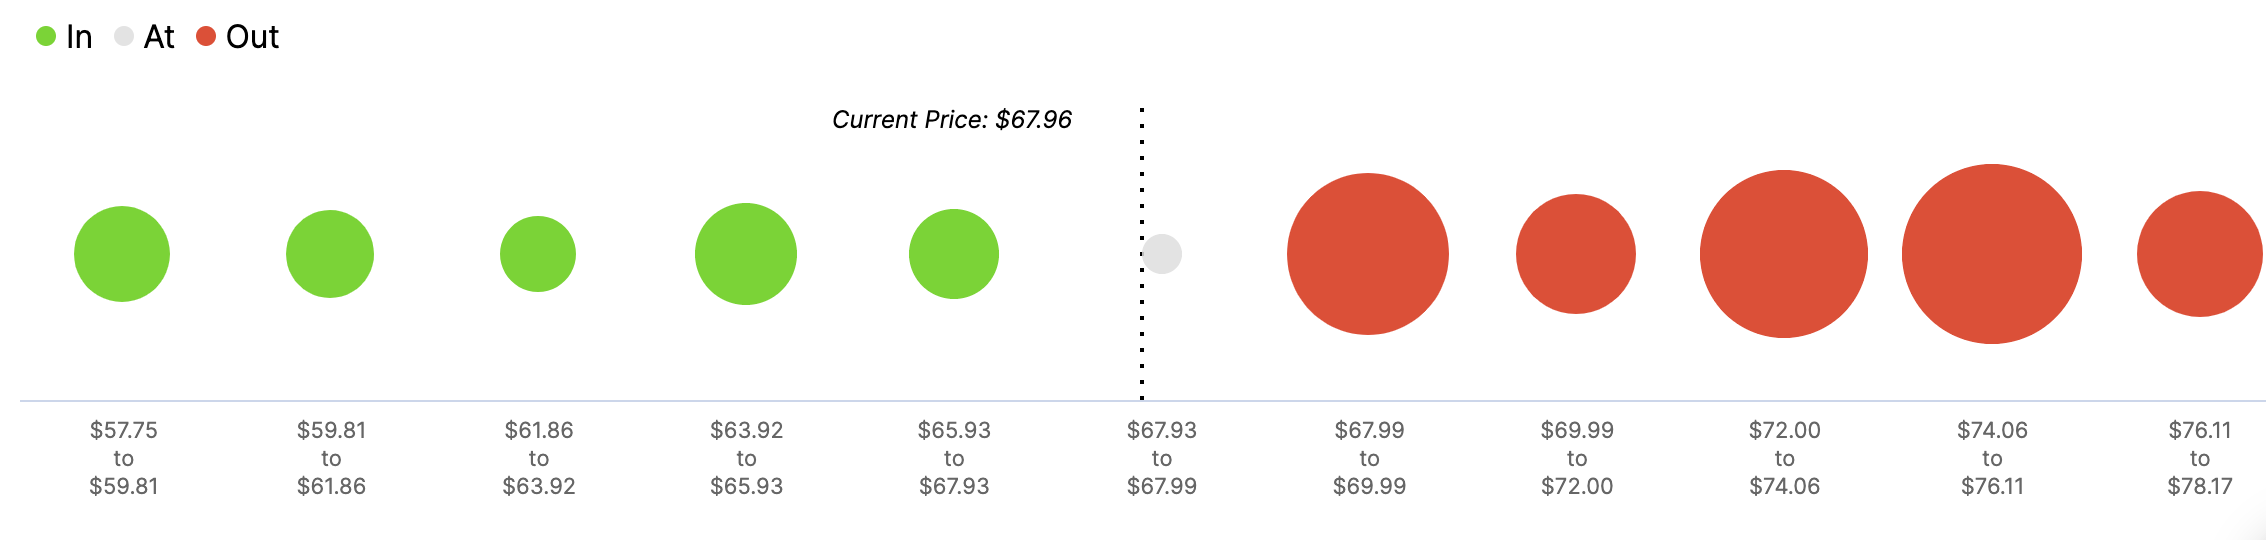 Aave In/Out of the Money Around Price